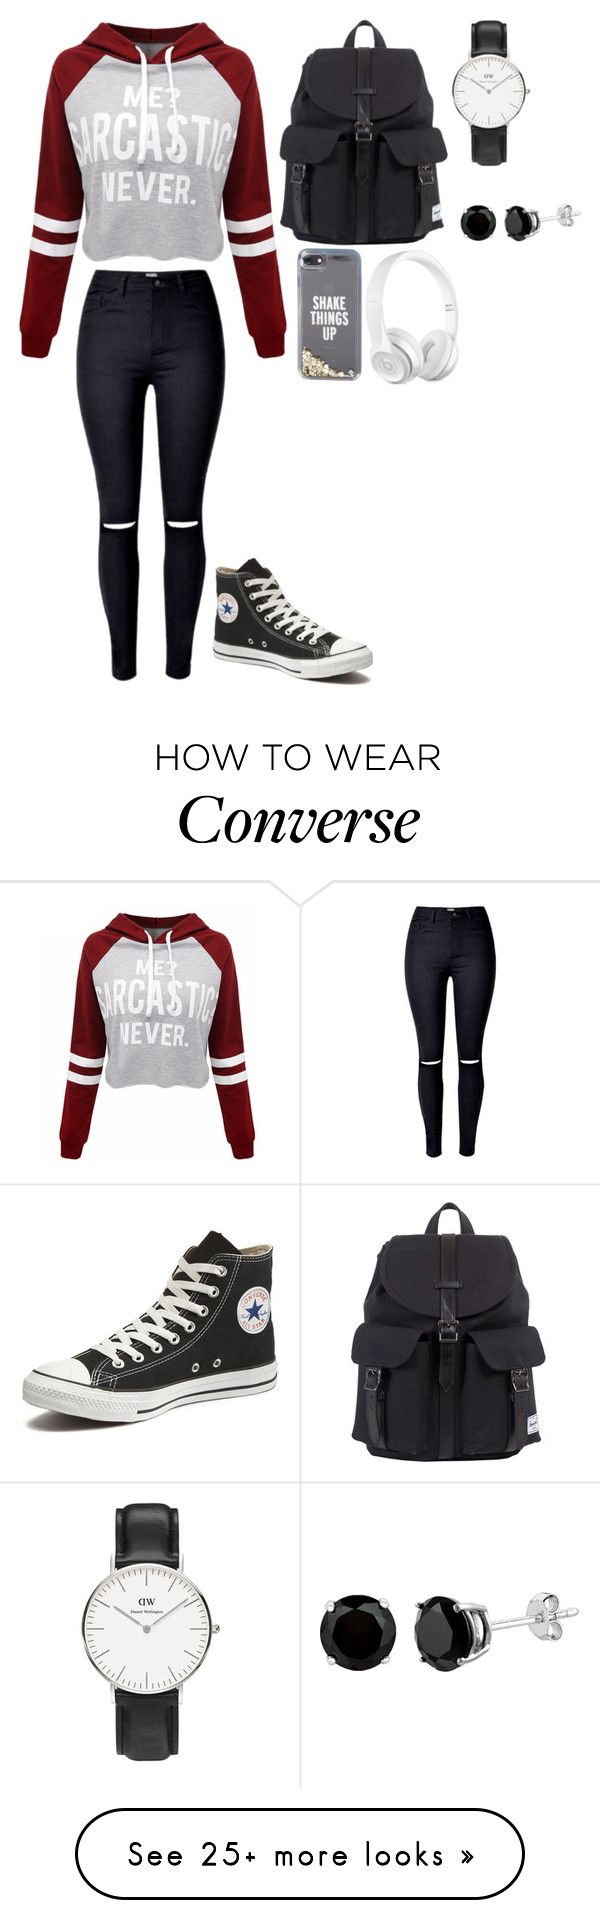 """Untitled #284"" by ellesse2132x on Polyvore featuring WithChic, Converse, Herschel, Kate Spade and Daniel Wellington"